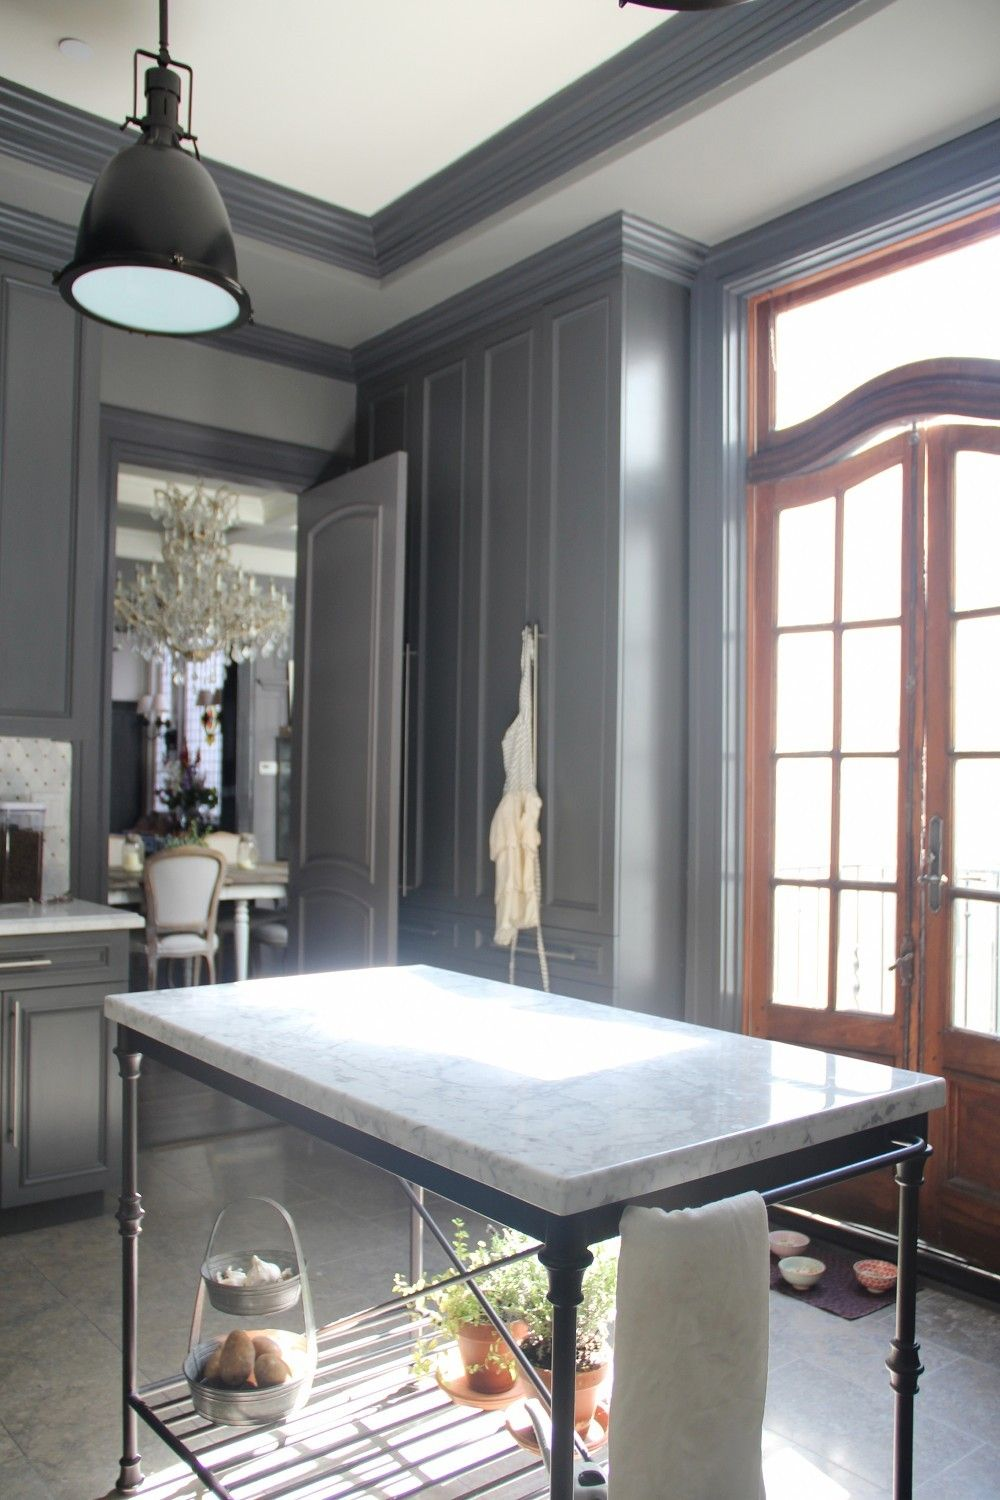 paint colors that match this apartment therapy photo  sw 7016 mindful gray sw u2026 paint colors that match this apartment therapy photo  sw 7016      rh   in pinterest com